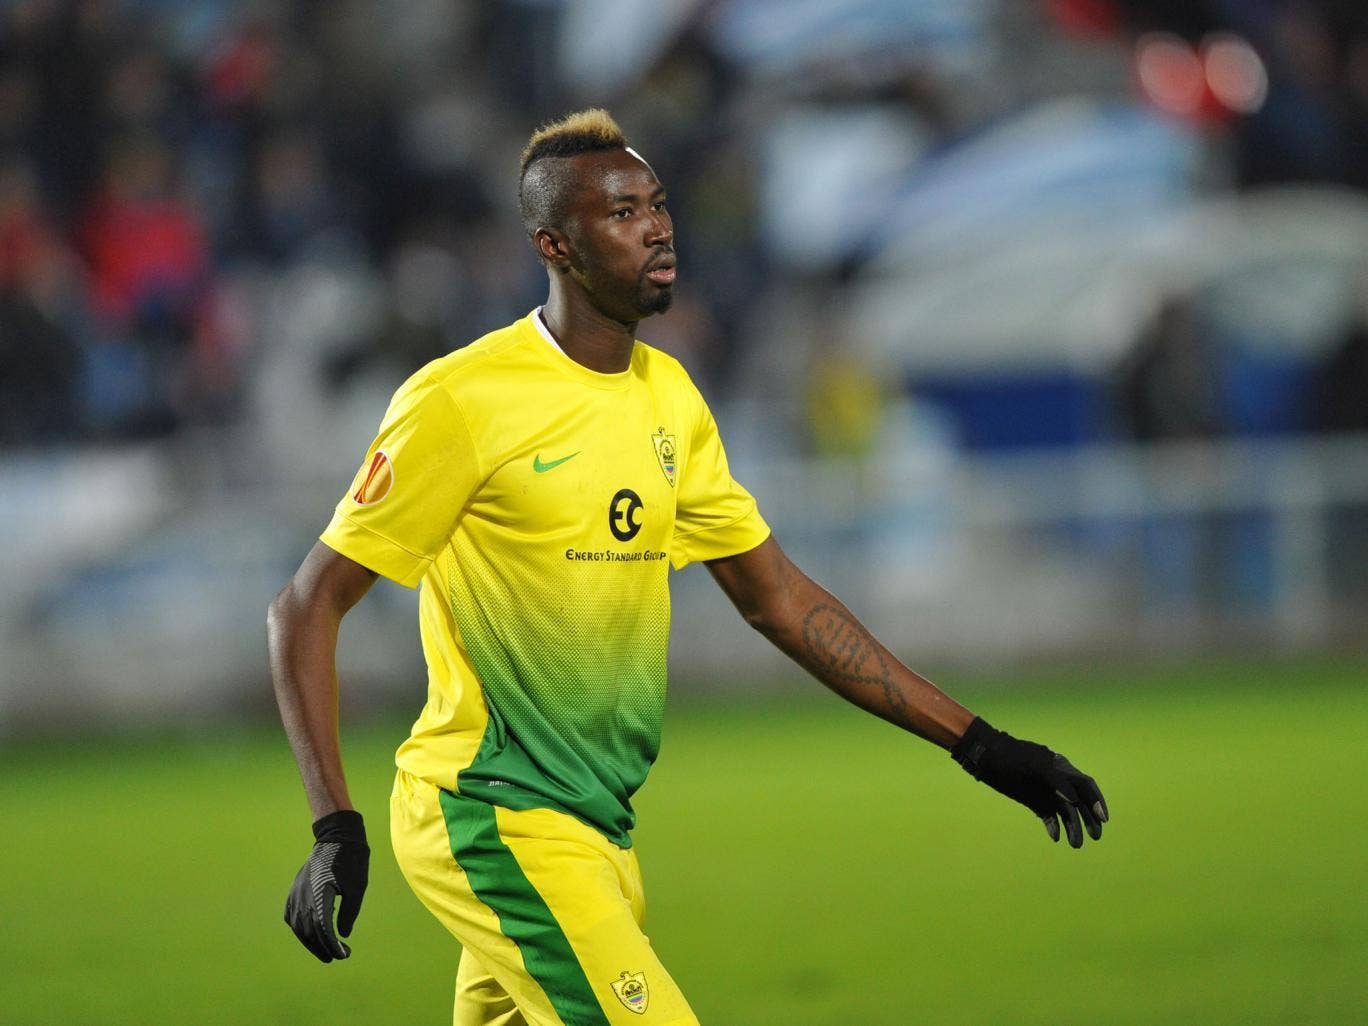 Lacina Traore has completed a move to Everton